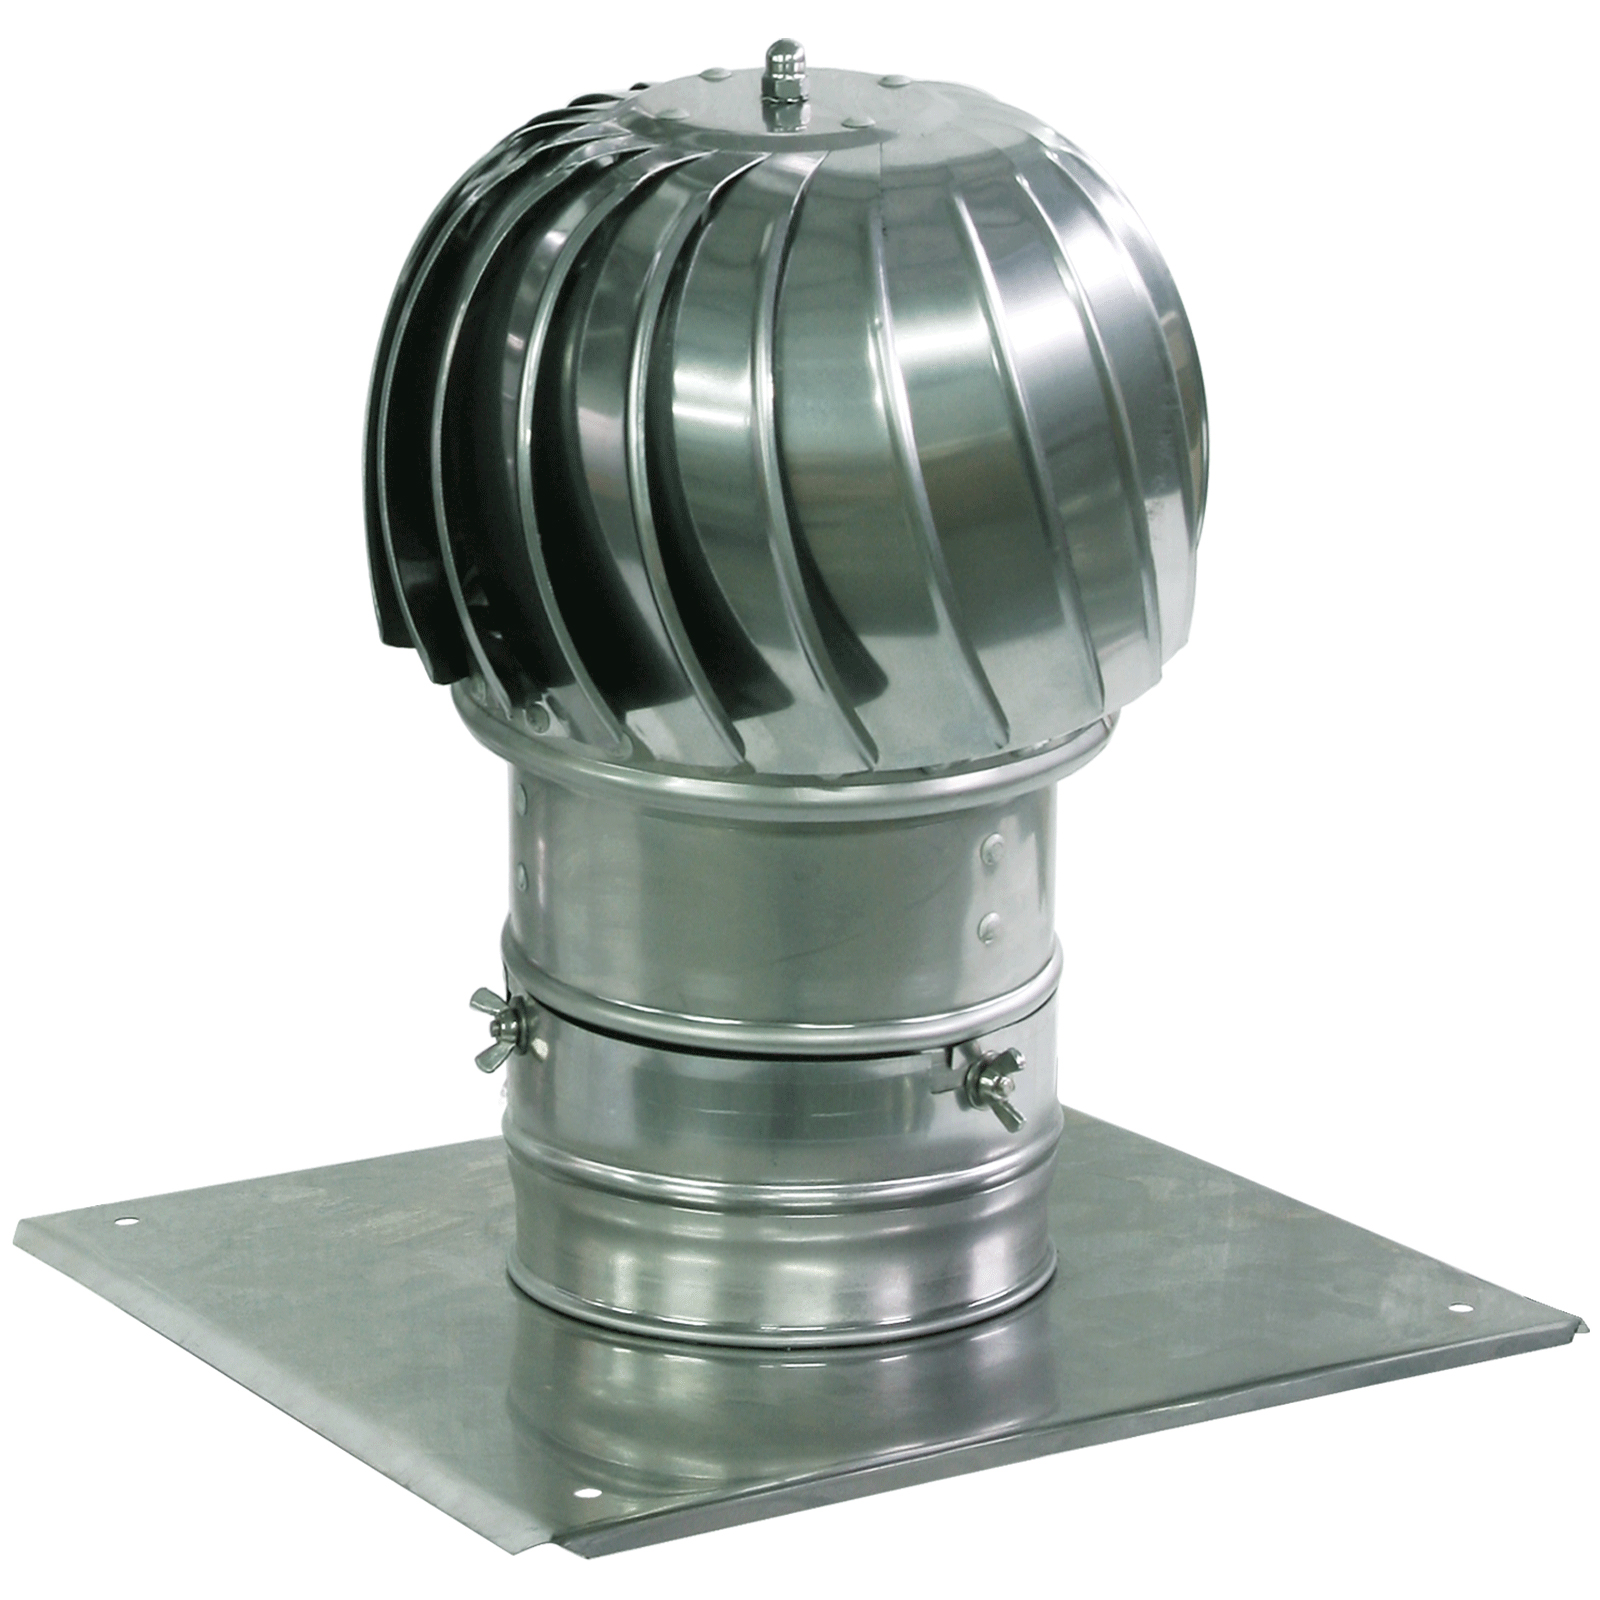 300mm Spinning Chimney Cowl With Roof Plate Aluminum Ventilation